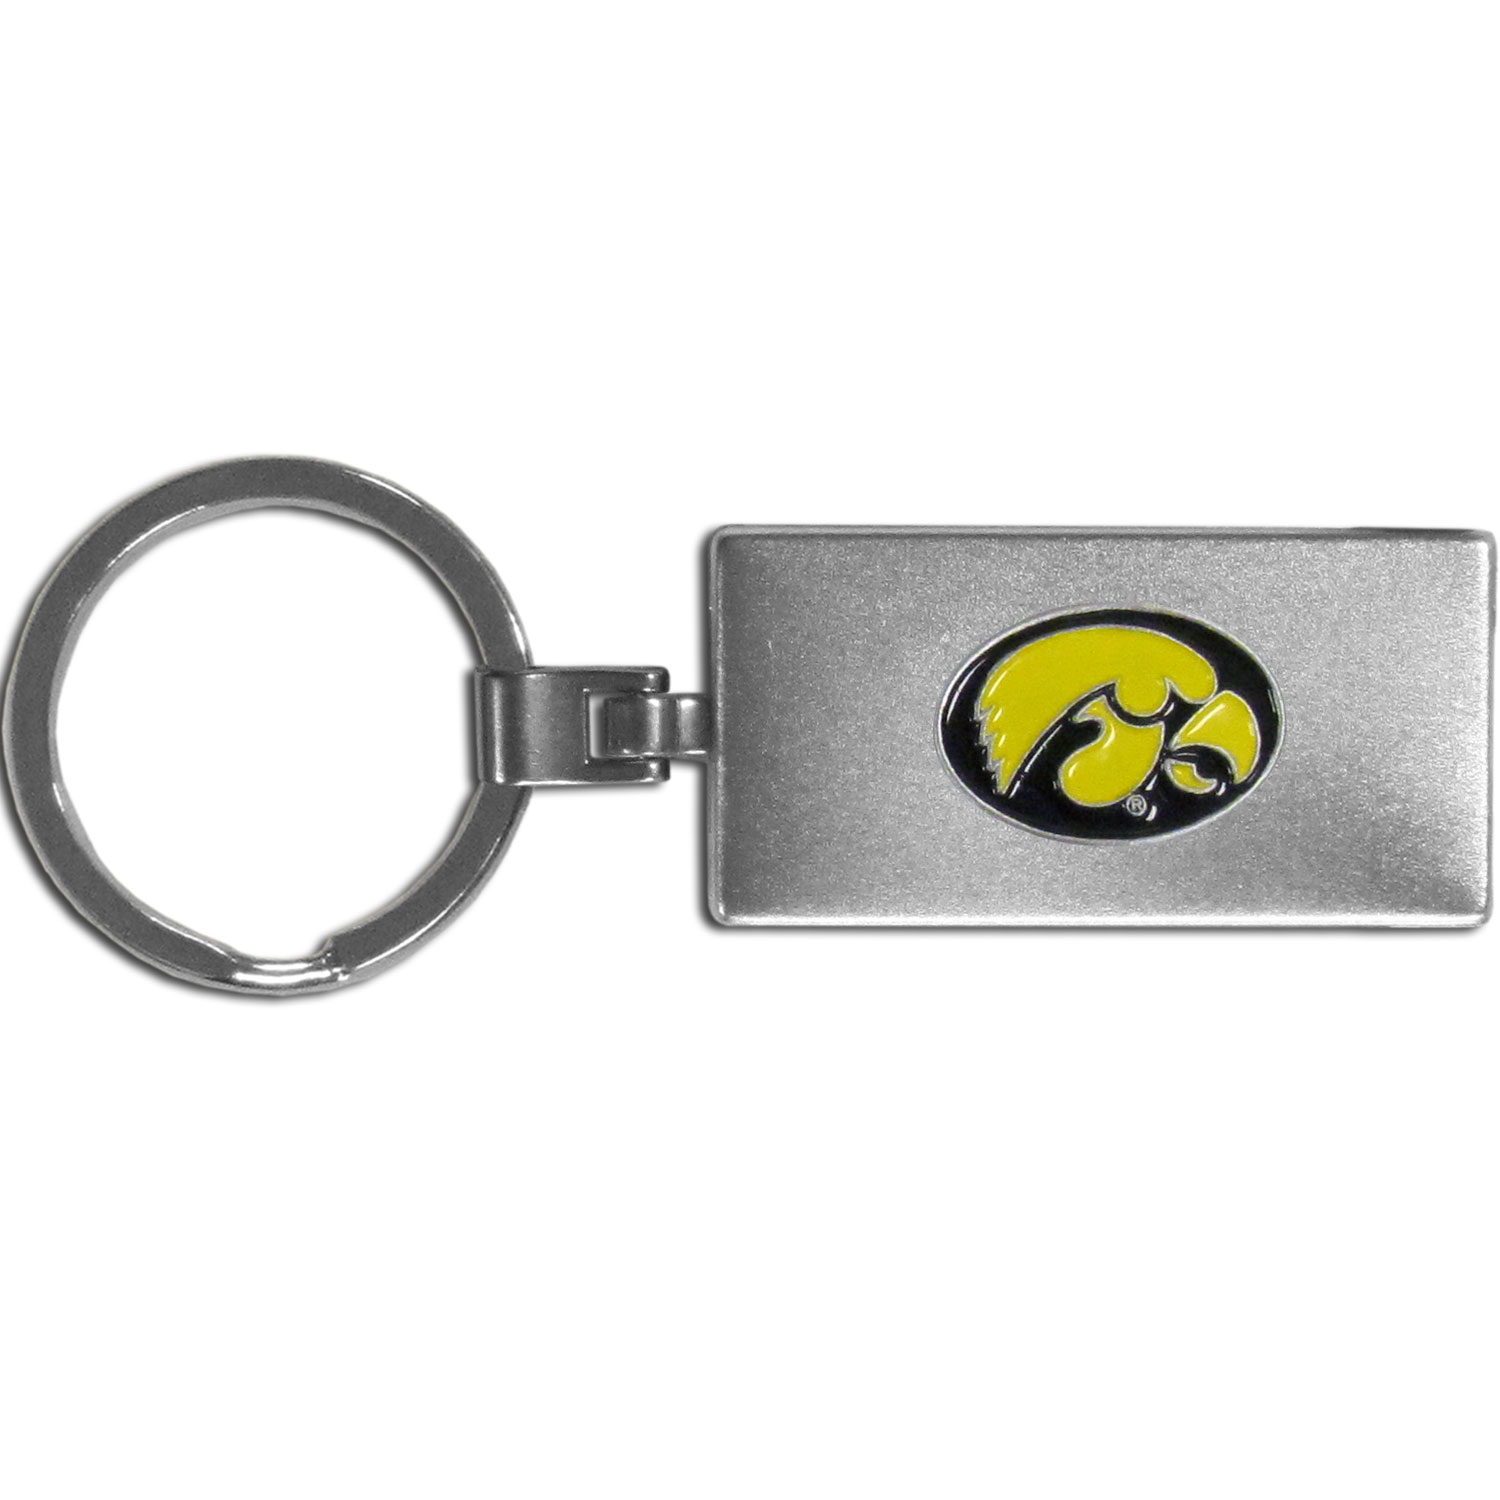 Iowa Hawkeyes Multi-tool Key Chain - Be the hero at the tailgate, camping, or on a Friday night with your Iowa Hawkeyes Multi-Tool Keychain which comes complete with bottle opener, scissors, knife, nail file and screw driver. Be it opening a package or a beverage Siskiyou's Multi-Tool Keychain goes wherever your keys do. The keychain hangs at 4 inches long when closed.